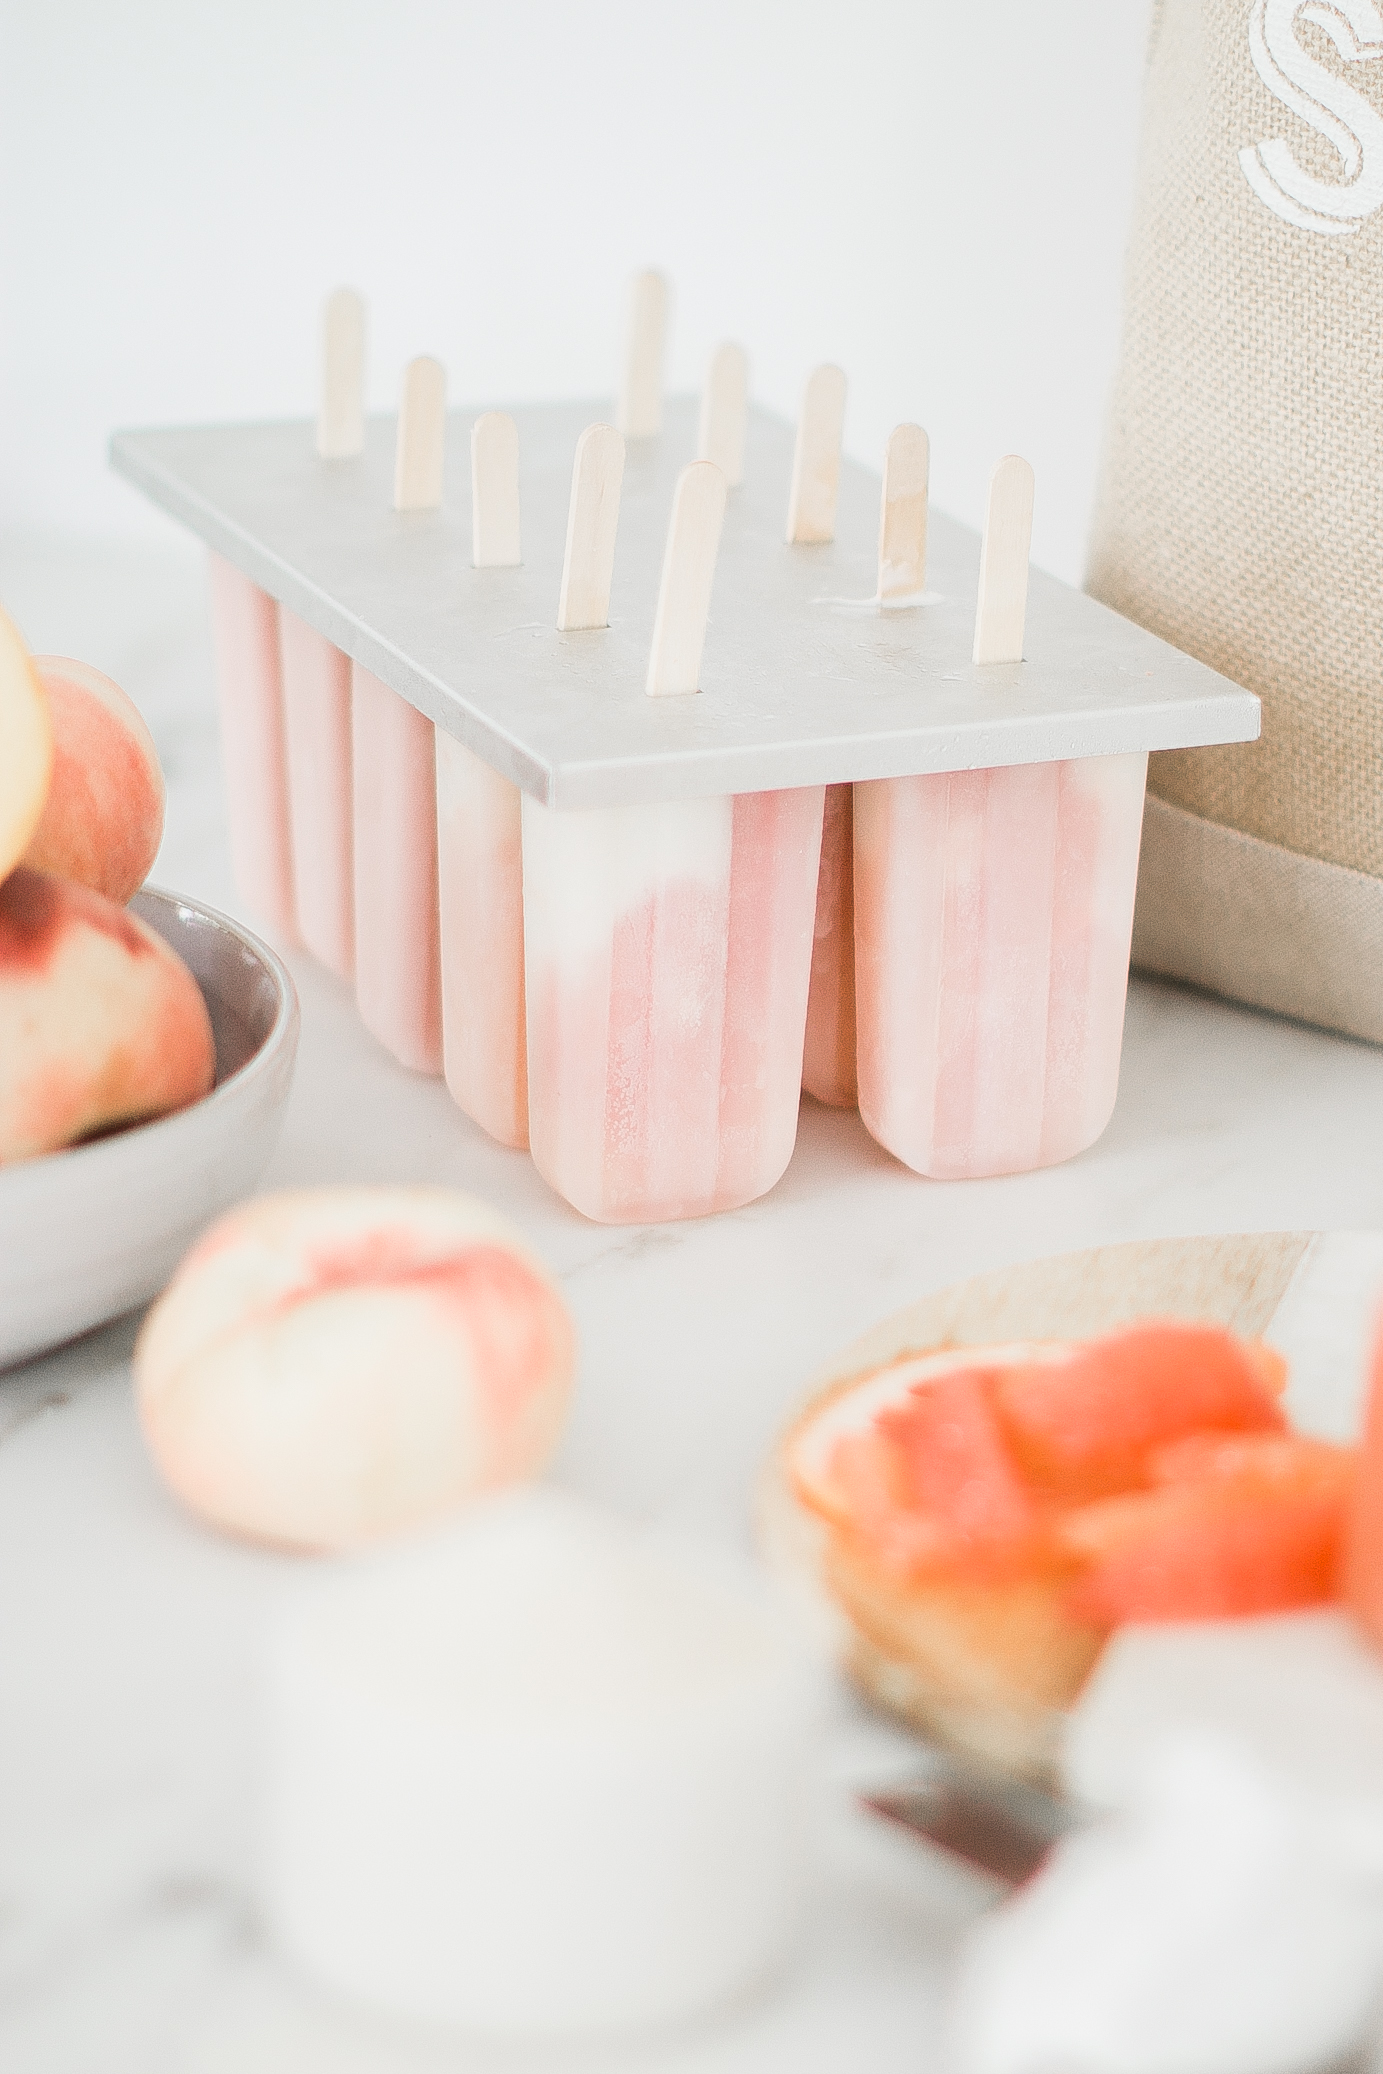 Popsicles Summer Grapefruit Coconut Peach Monika Hibbs